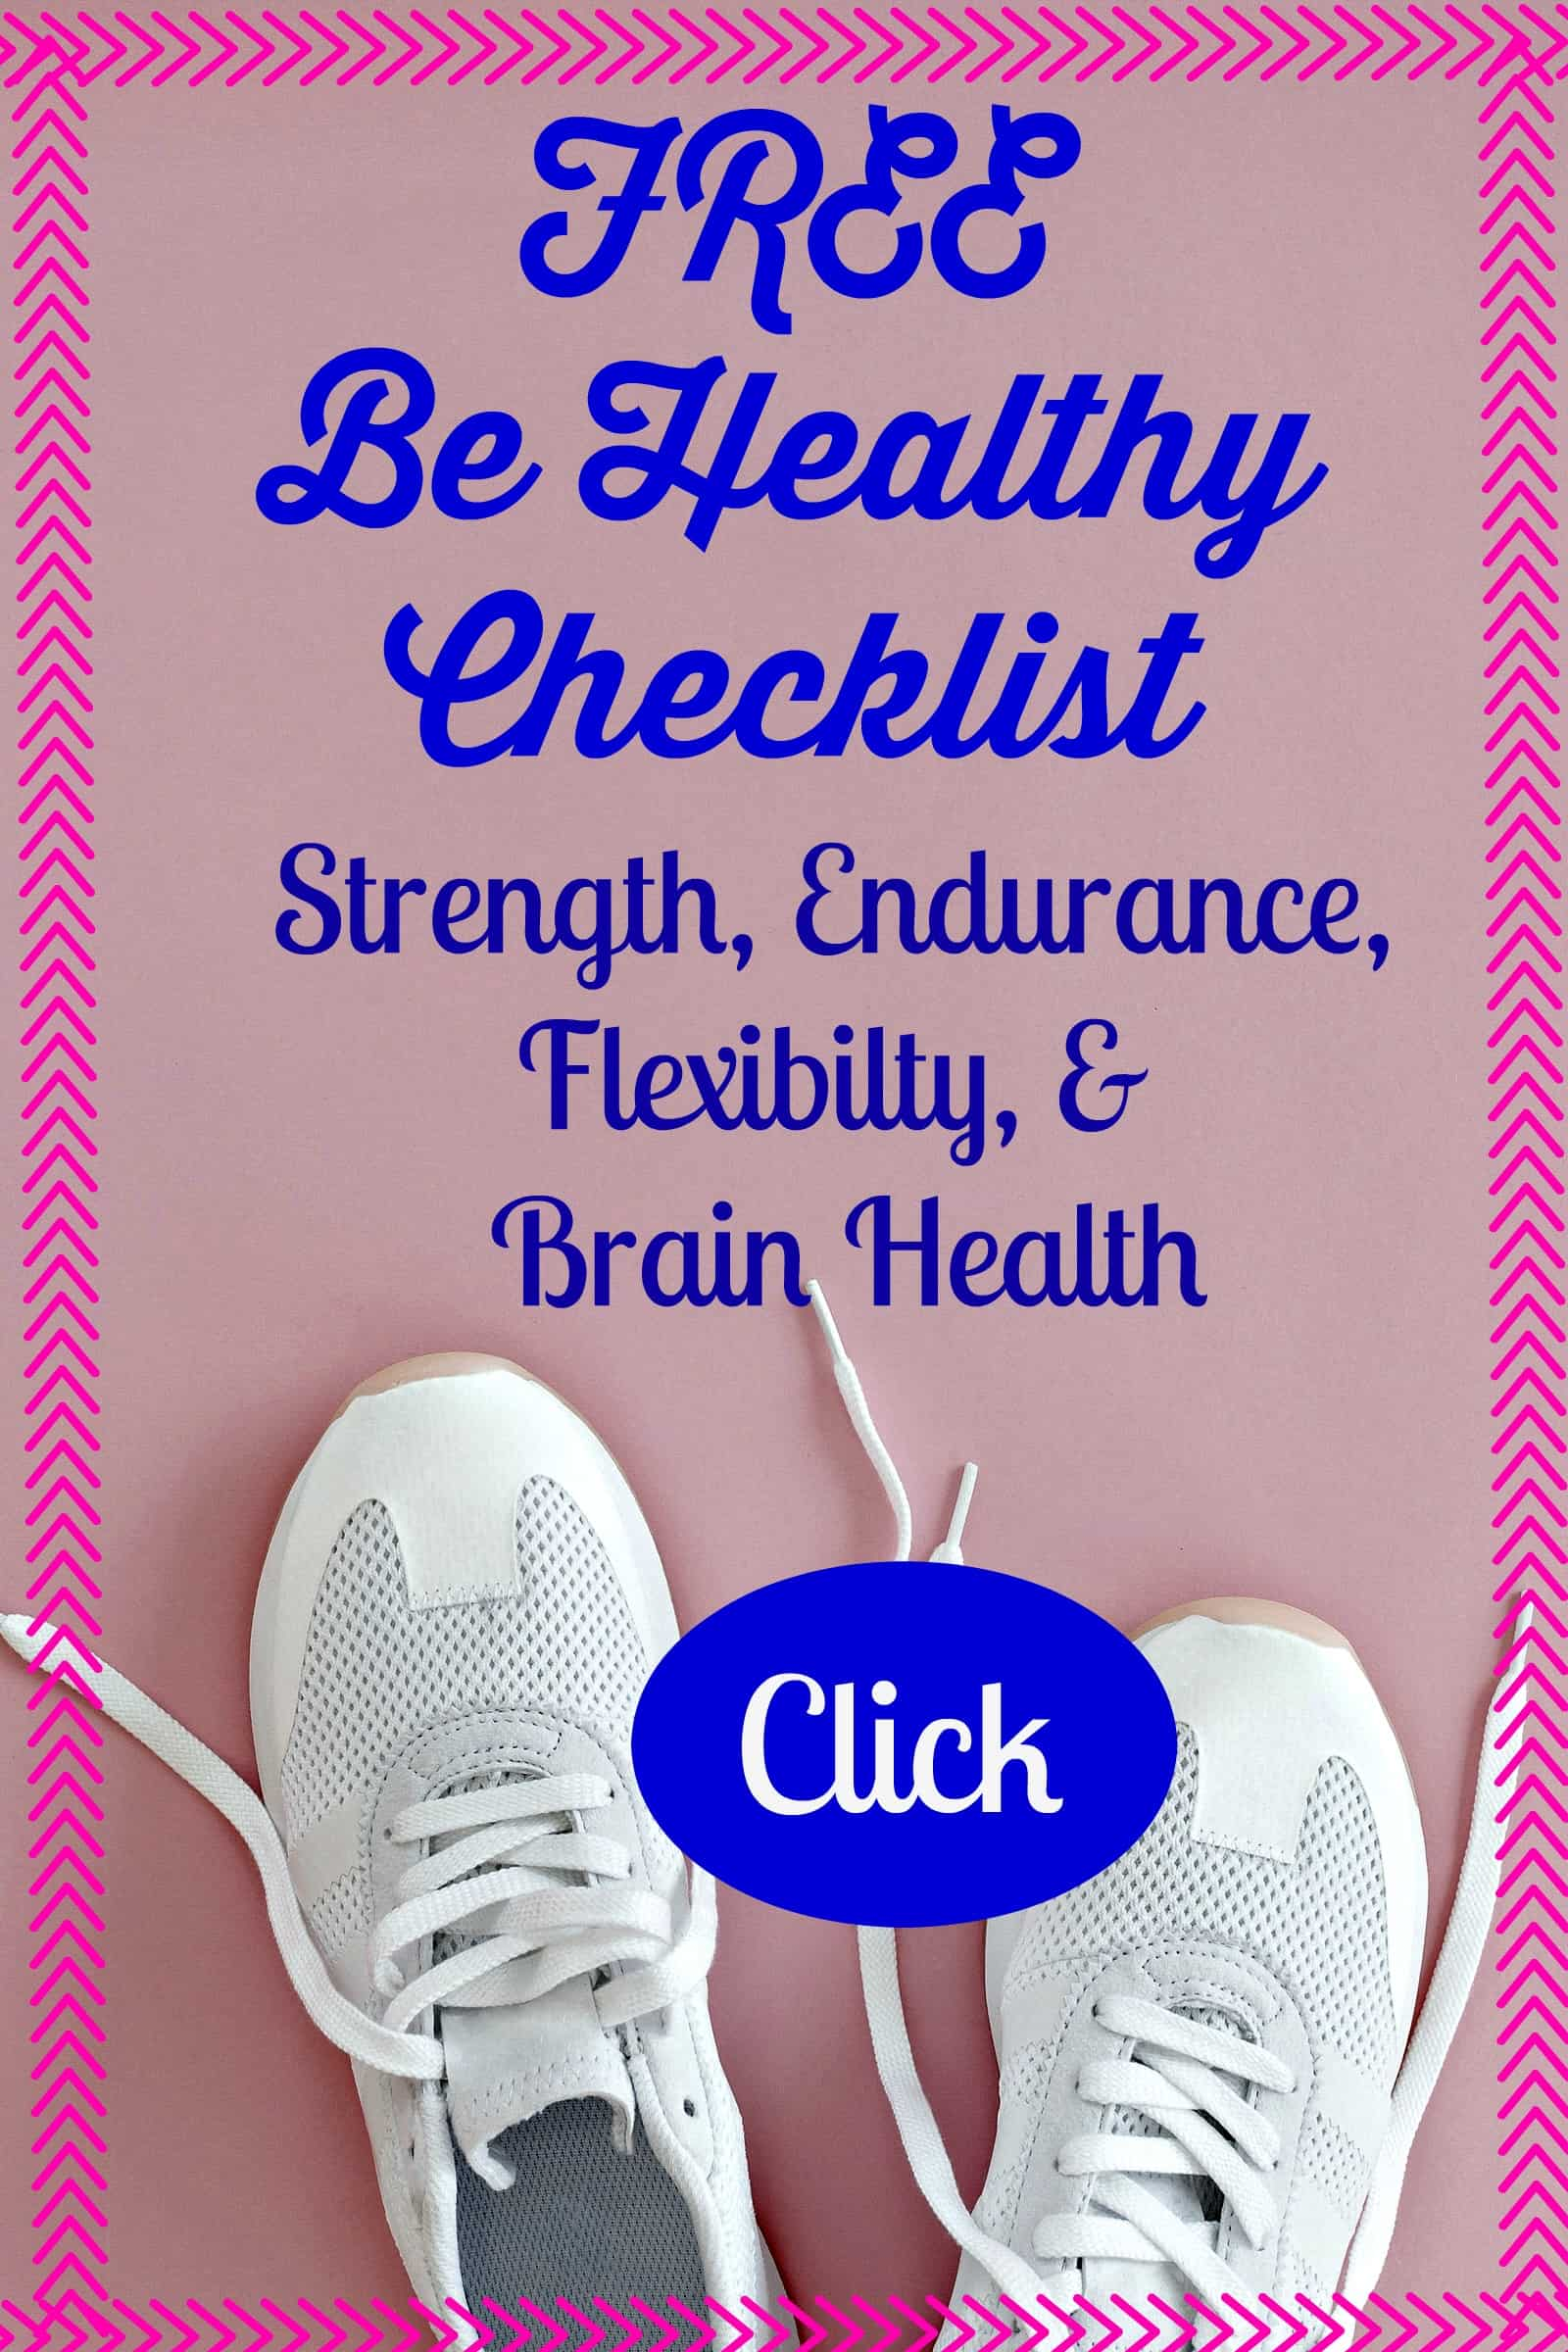 stay healthy checklist